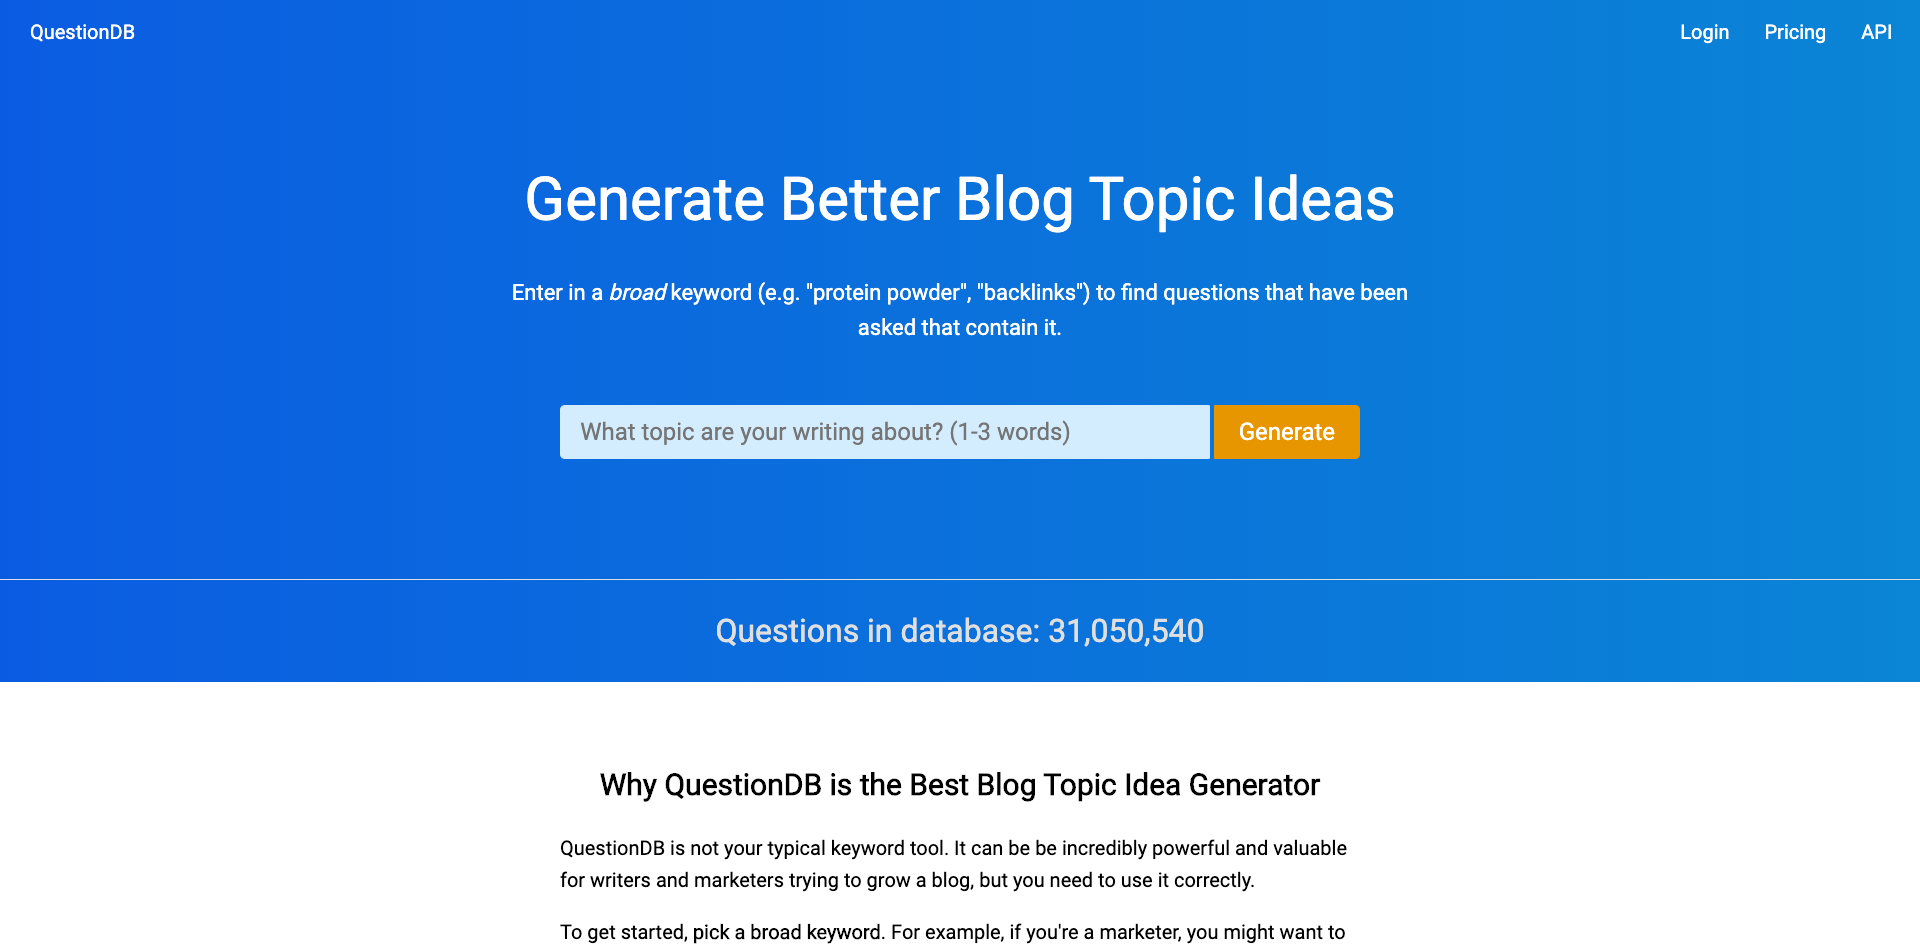 Generate Better Blog Topic Ideas